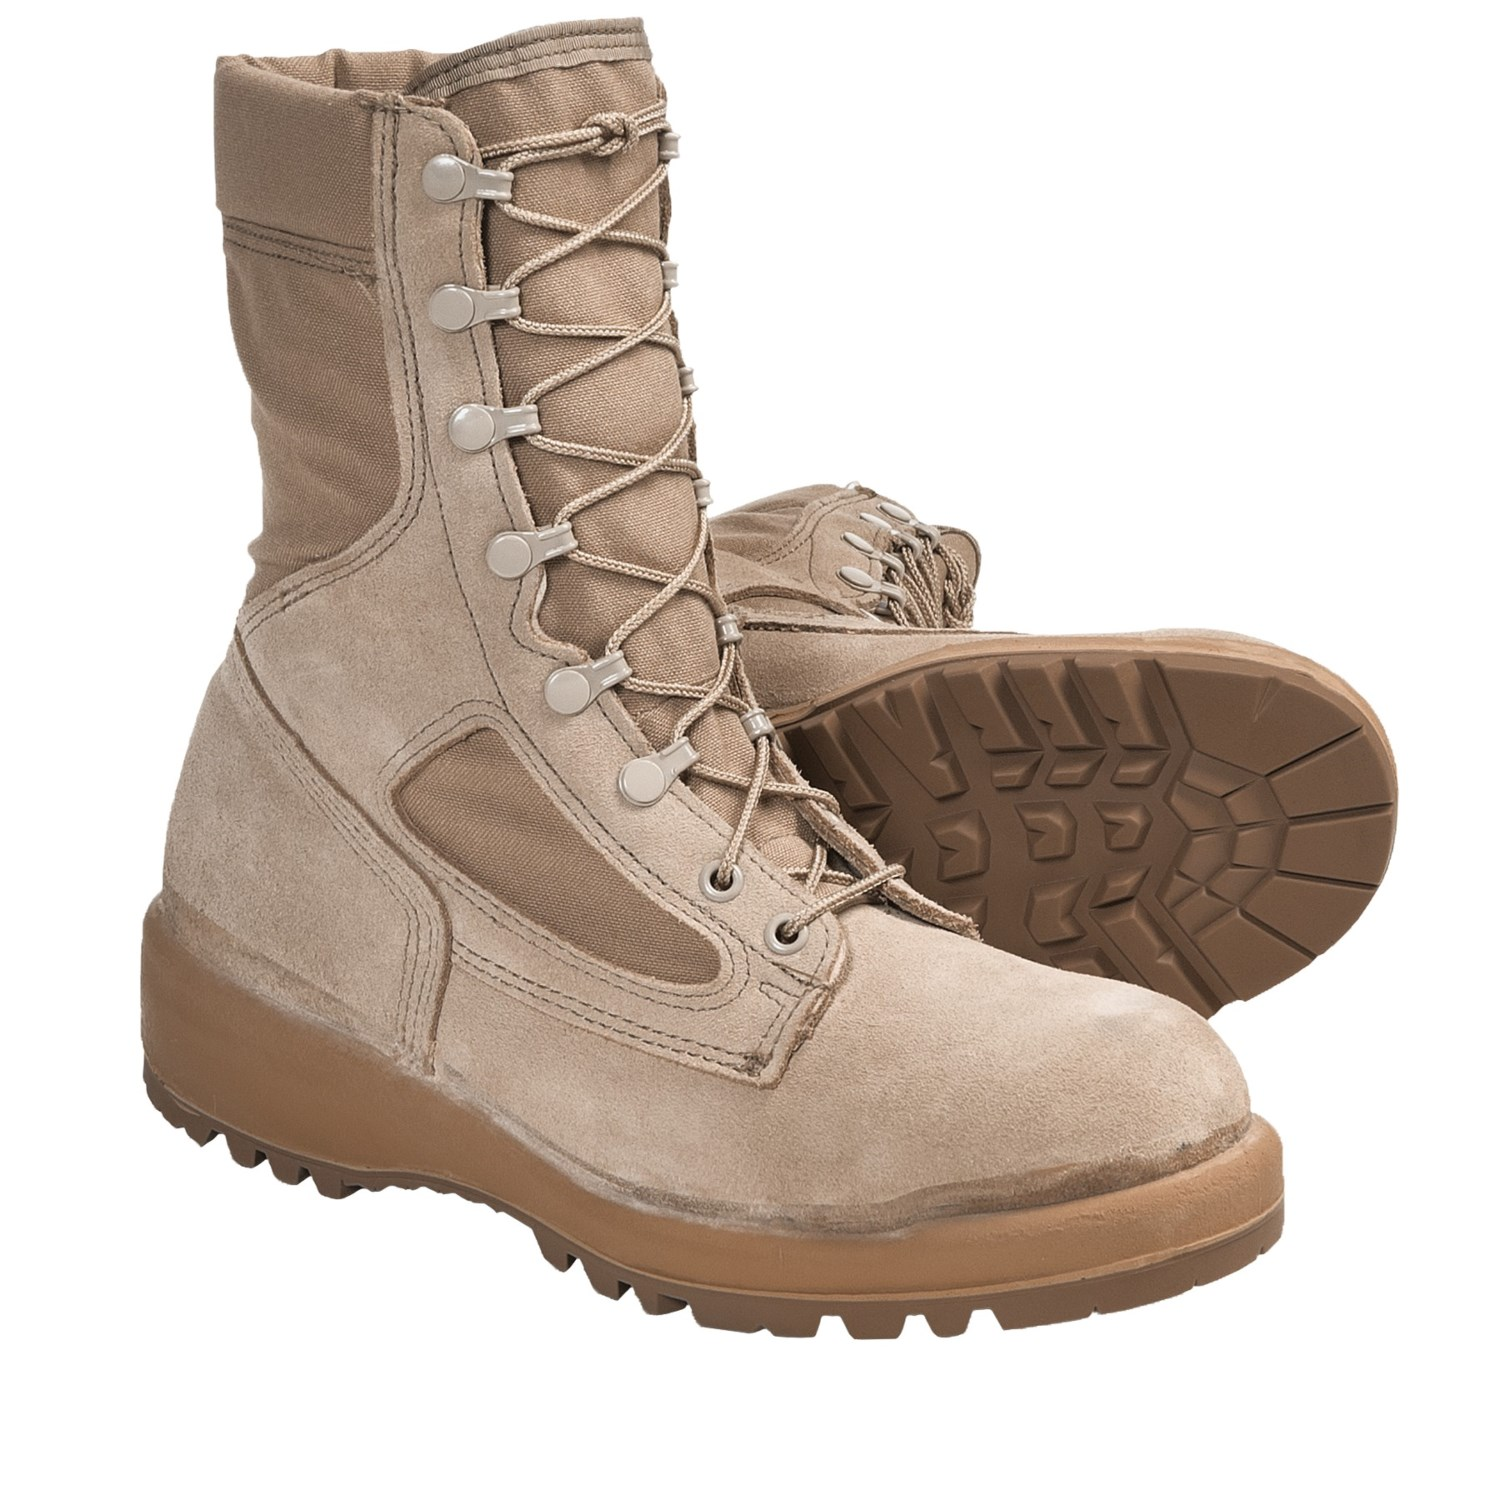 Army Combat Boots For Men - Boot Hto